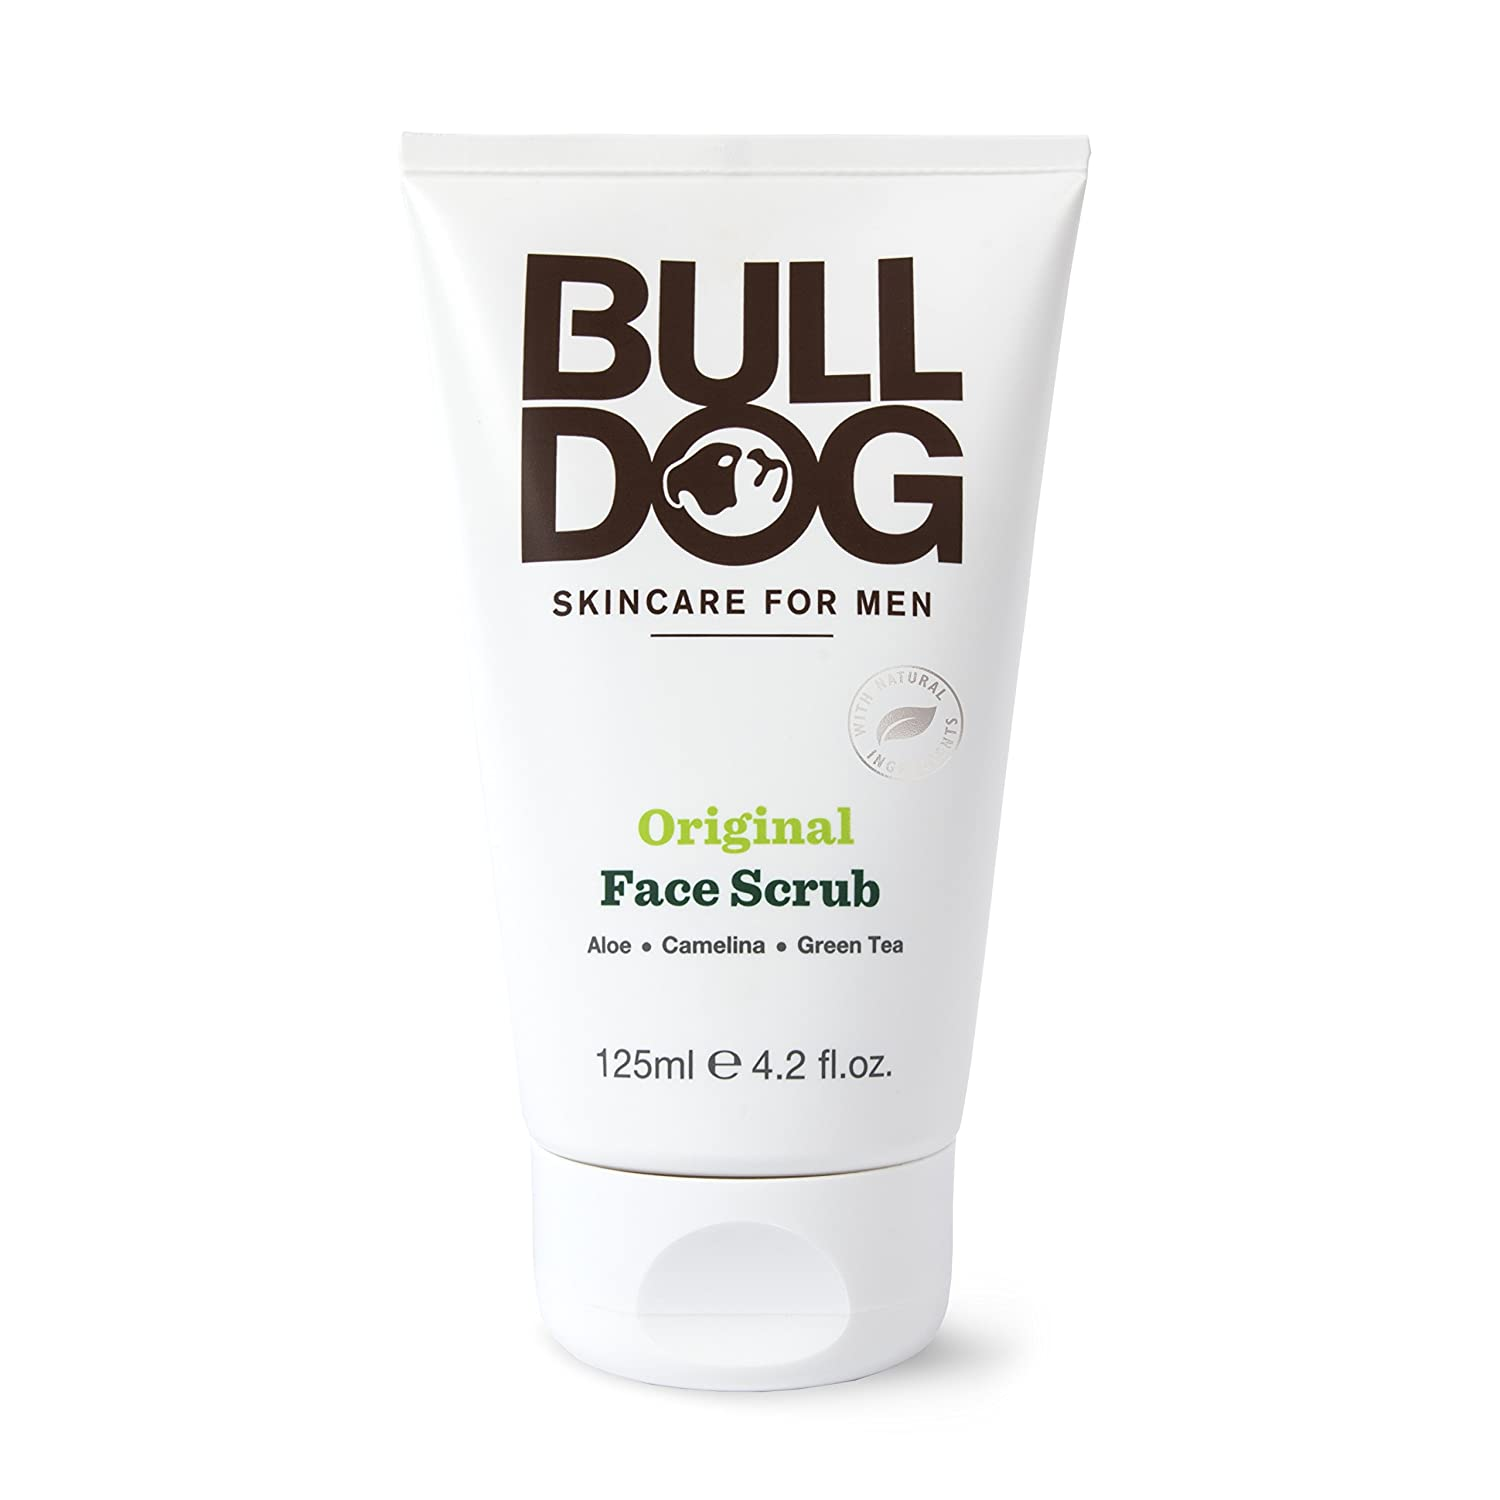 Bulldog Original Face Scrub 125 ml Bulldog Skincare For Men 107908191